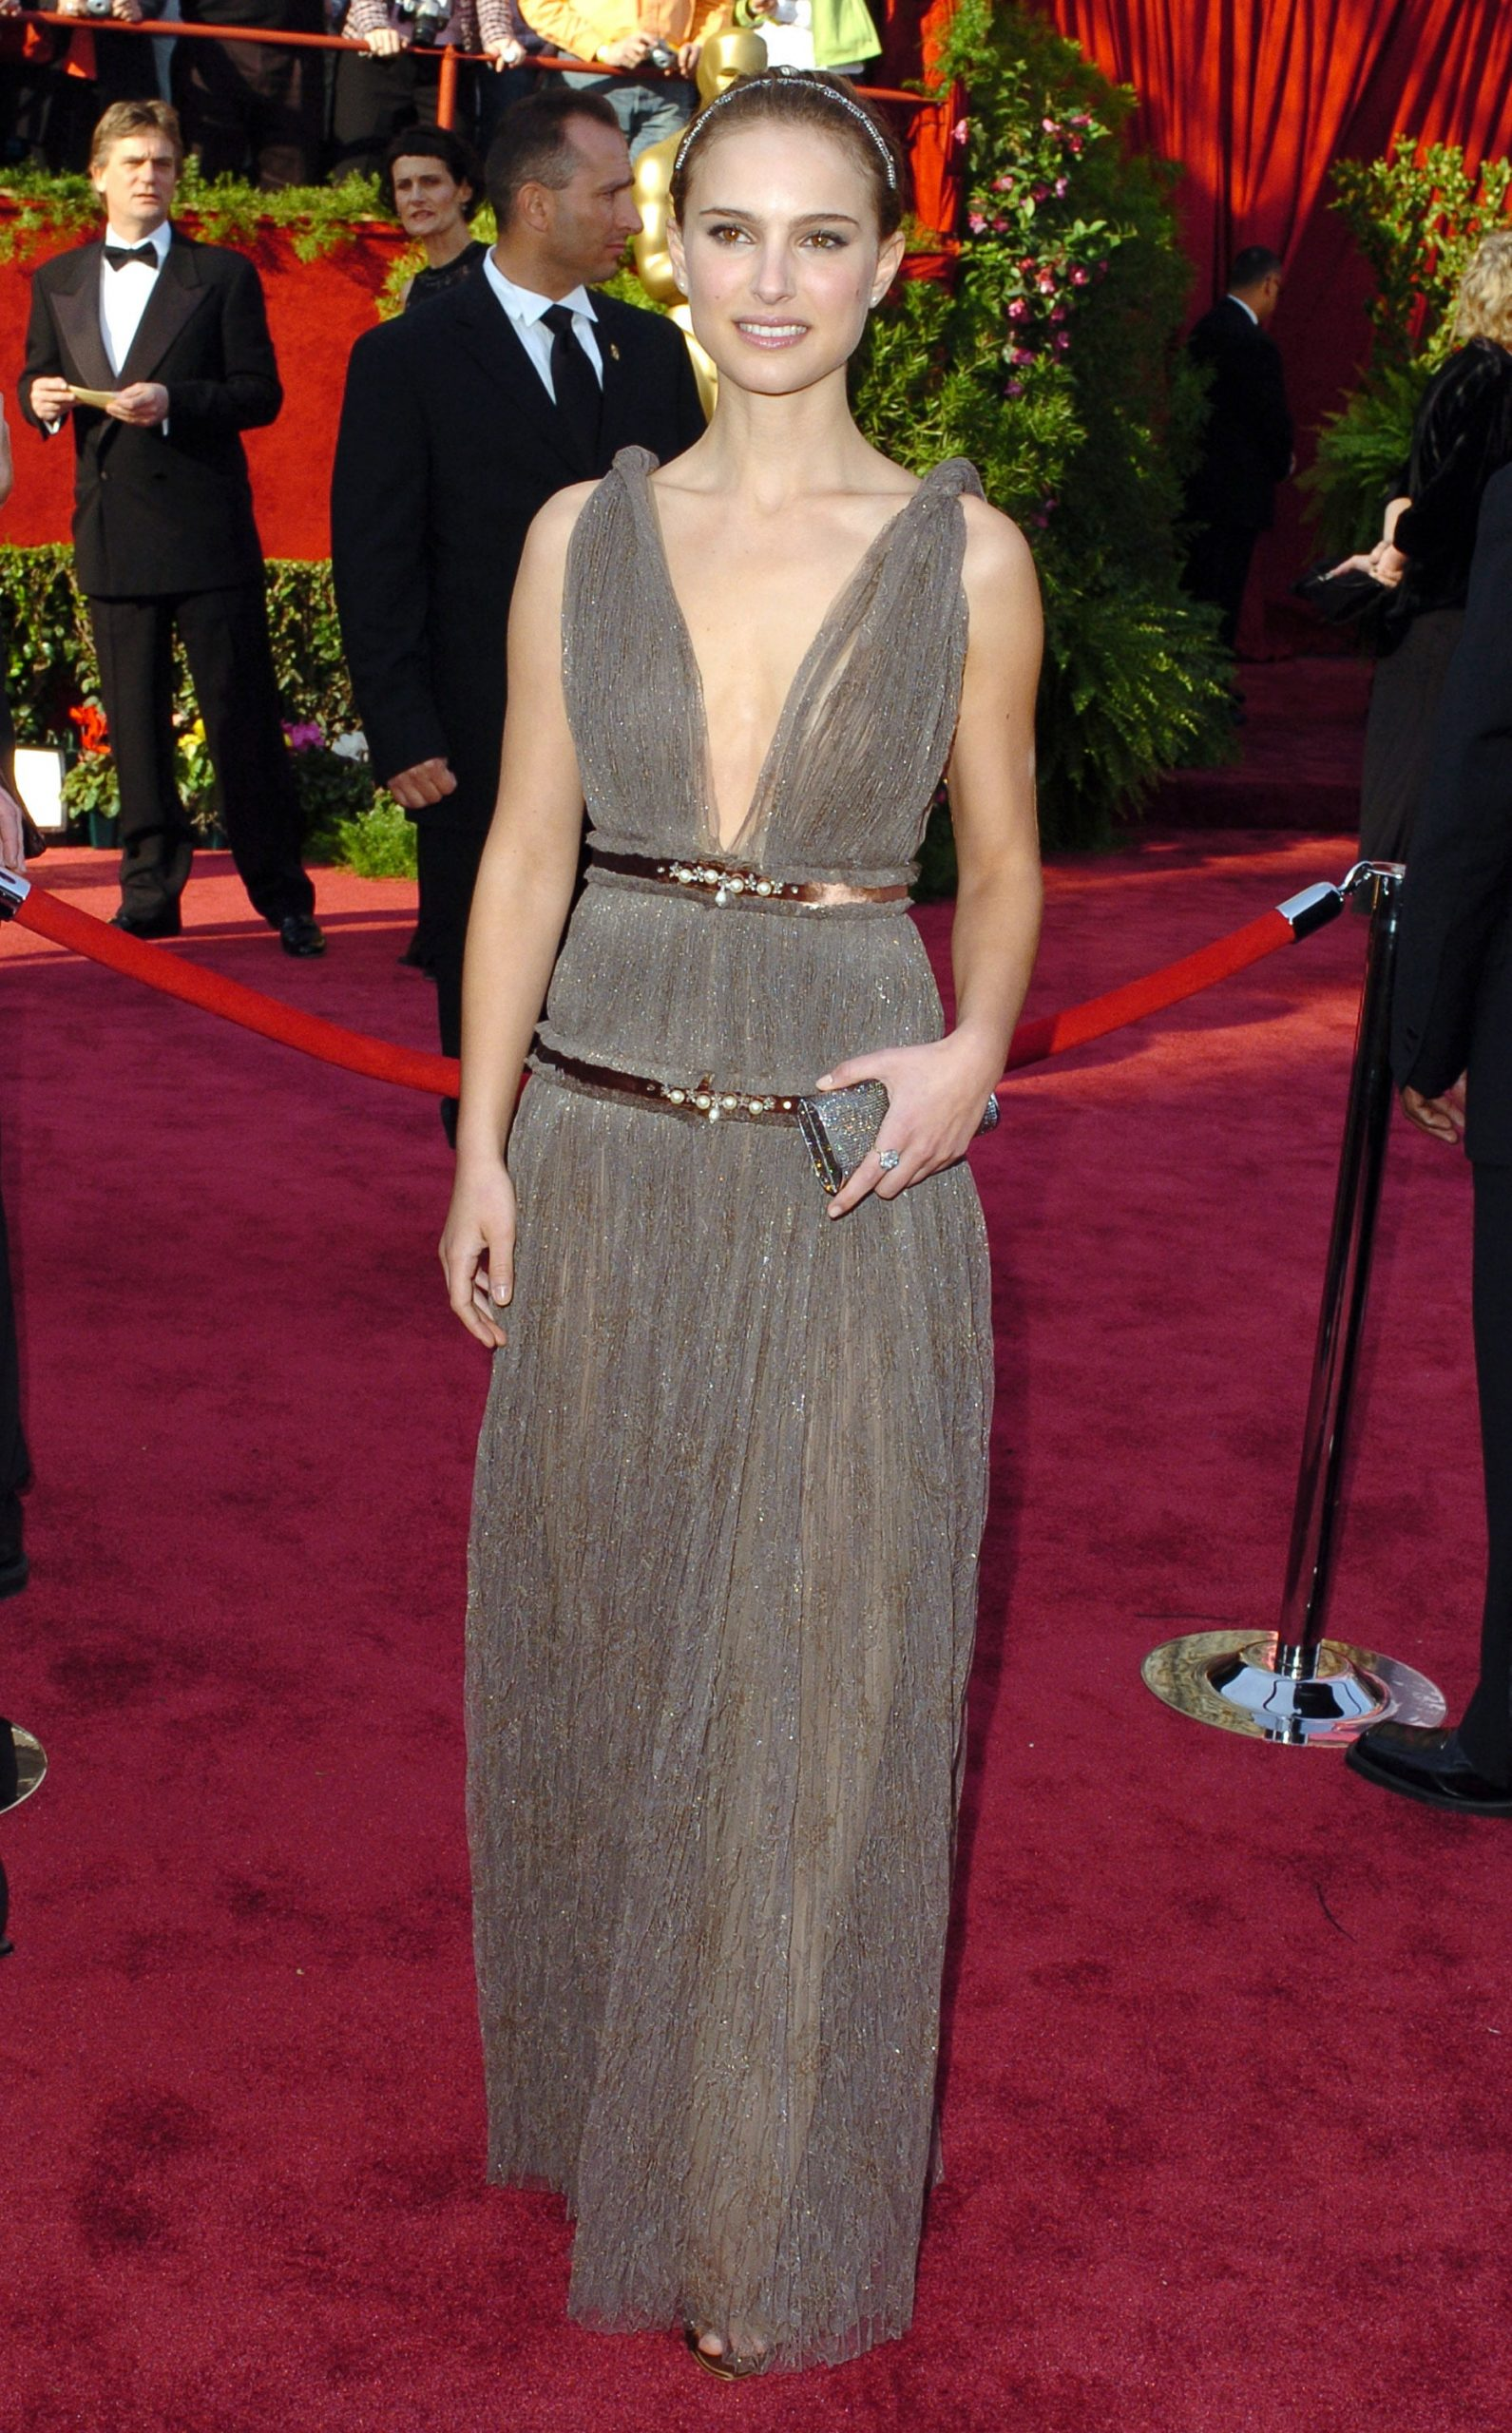 Natalie at Oscars 2005